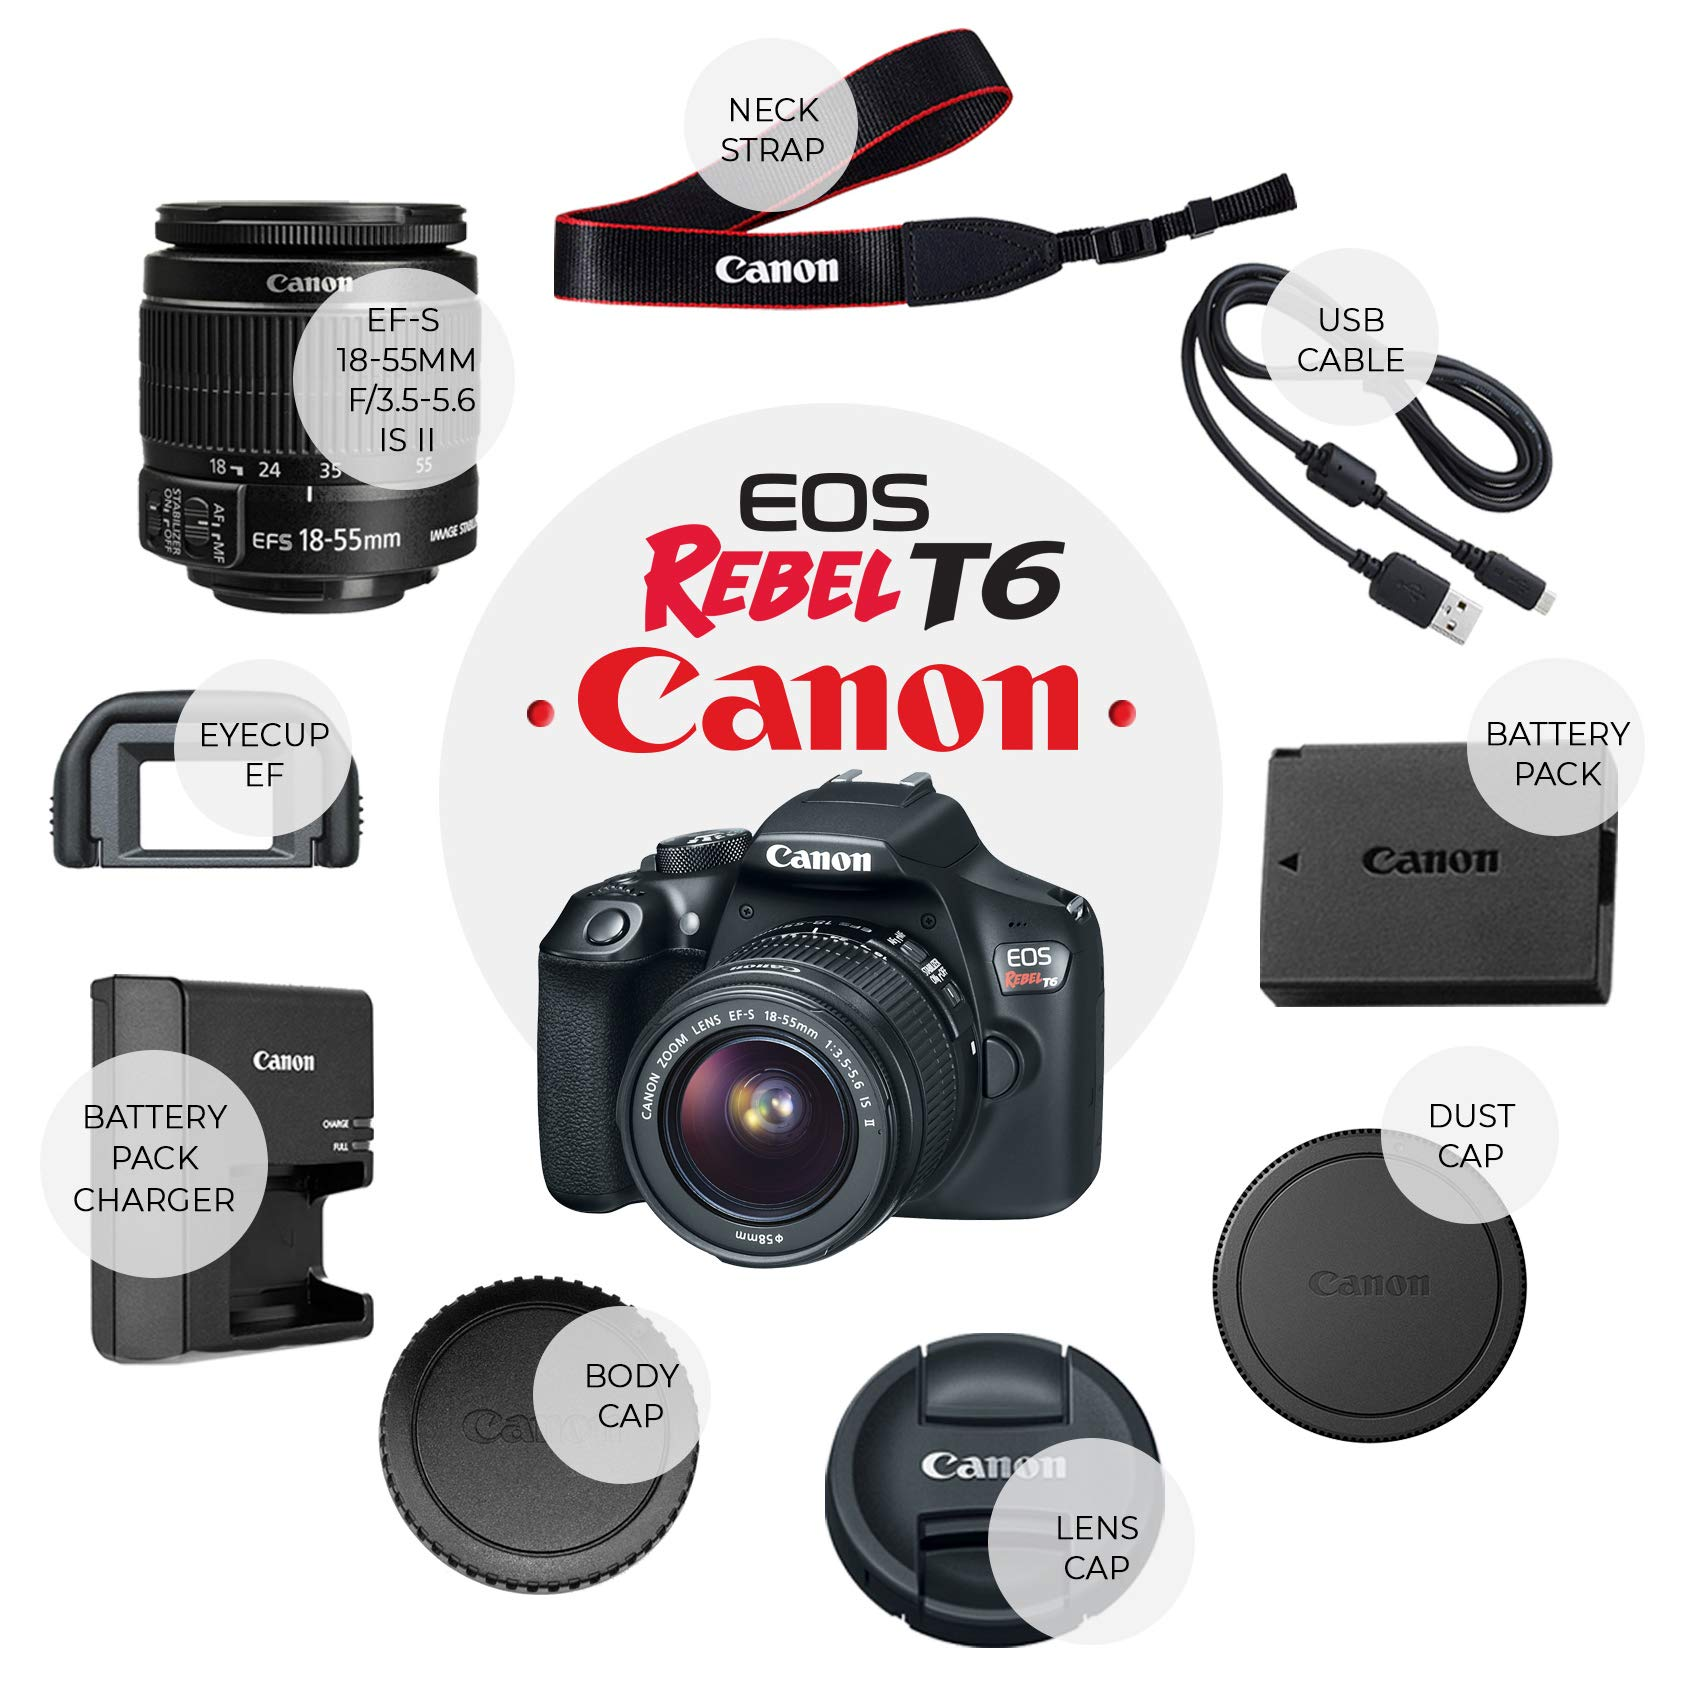 Canon Eos Rebel T6 Digital Slr Camera With 18 55mm Ef S F 3 5 5 6 Is Ii Lens 58mm Wide Angle Lens 2x Telephoto Lens Flash 48gb Sd Memory Card